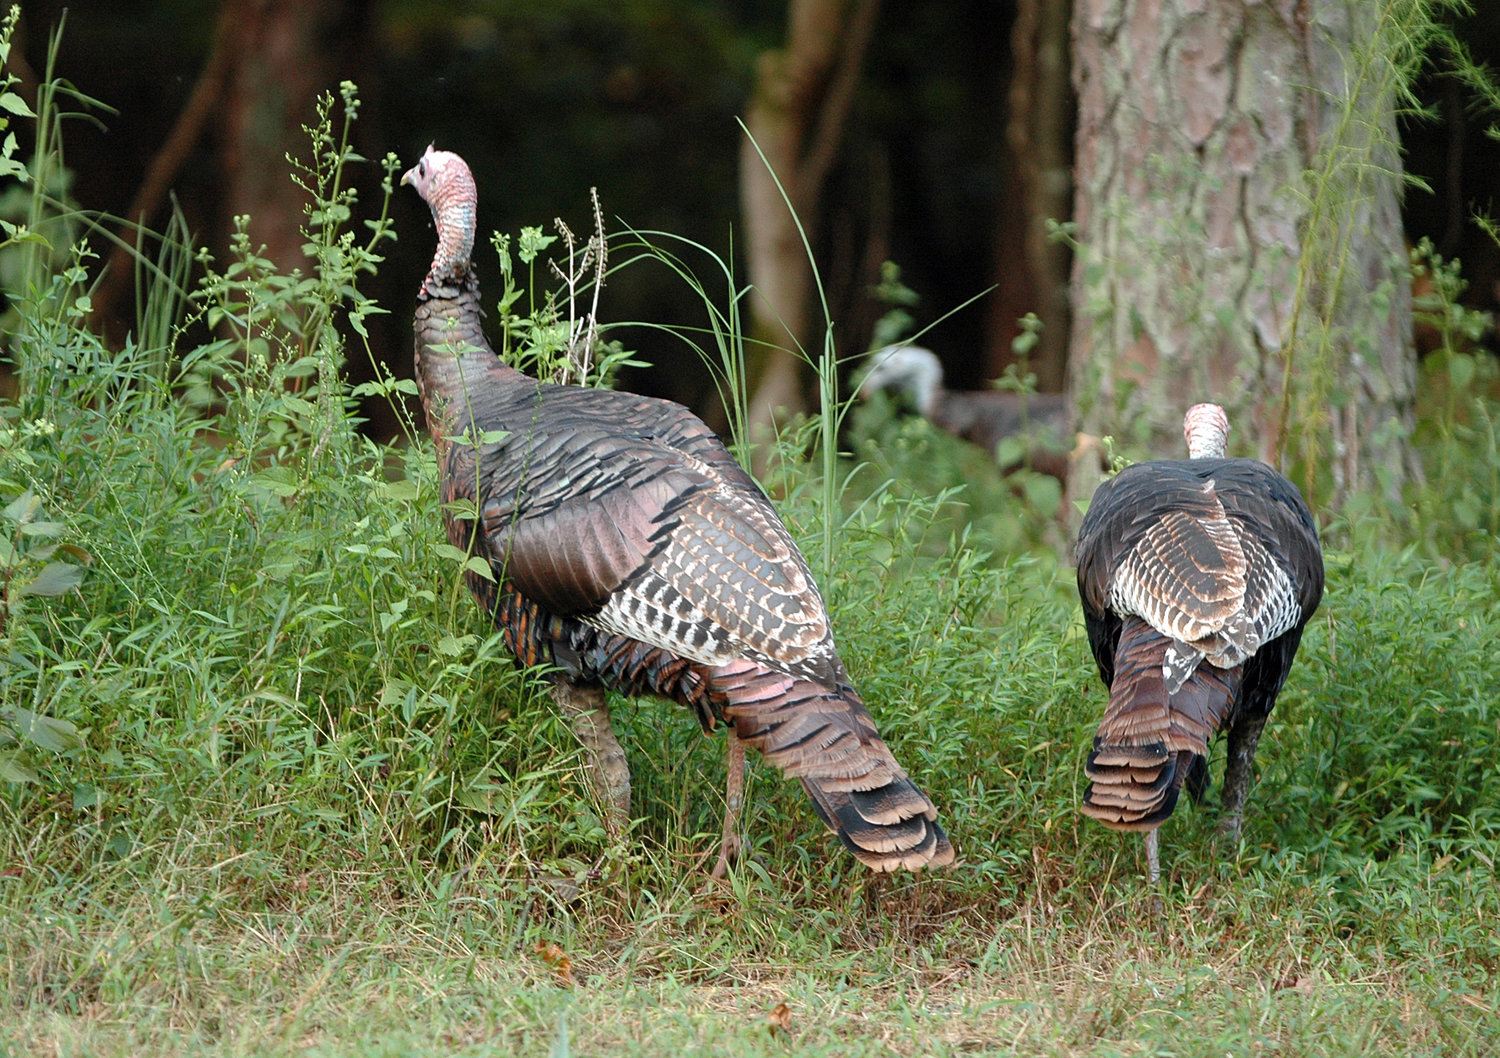 The Alabama Conservation Advisory Board voted to open the 2022 turkey season on March 25 with a four-bird season bag limit.